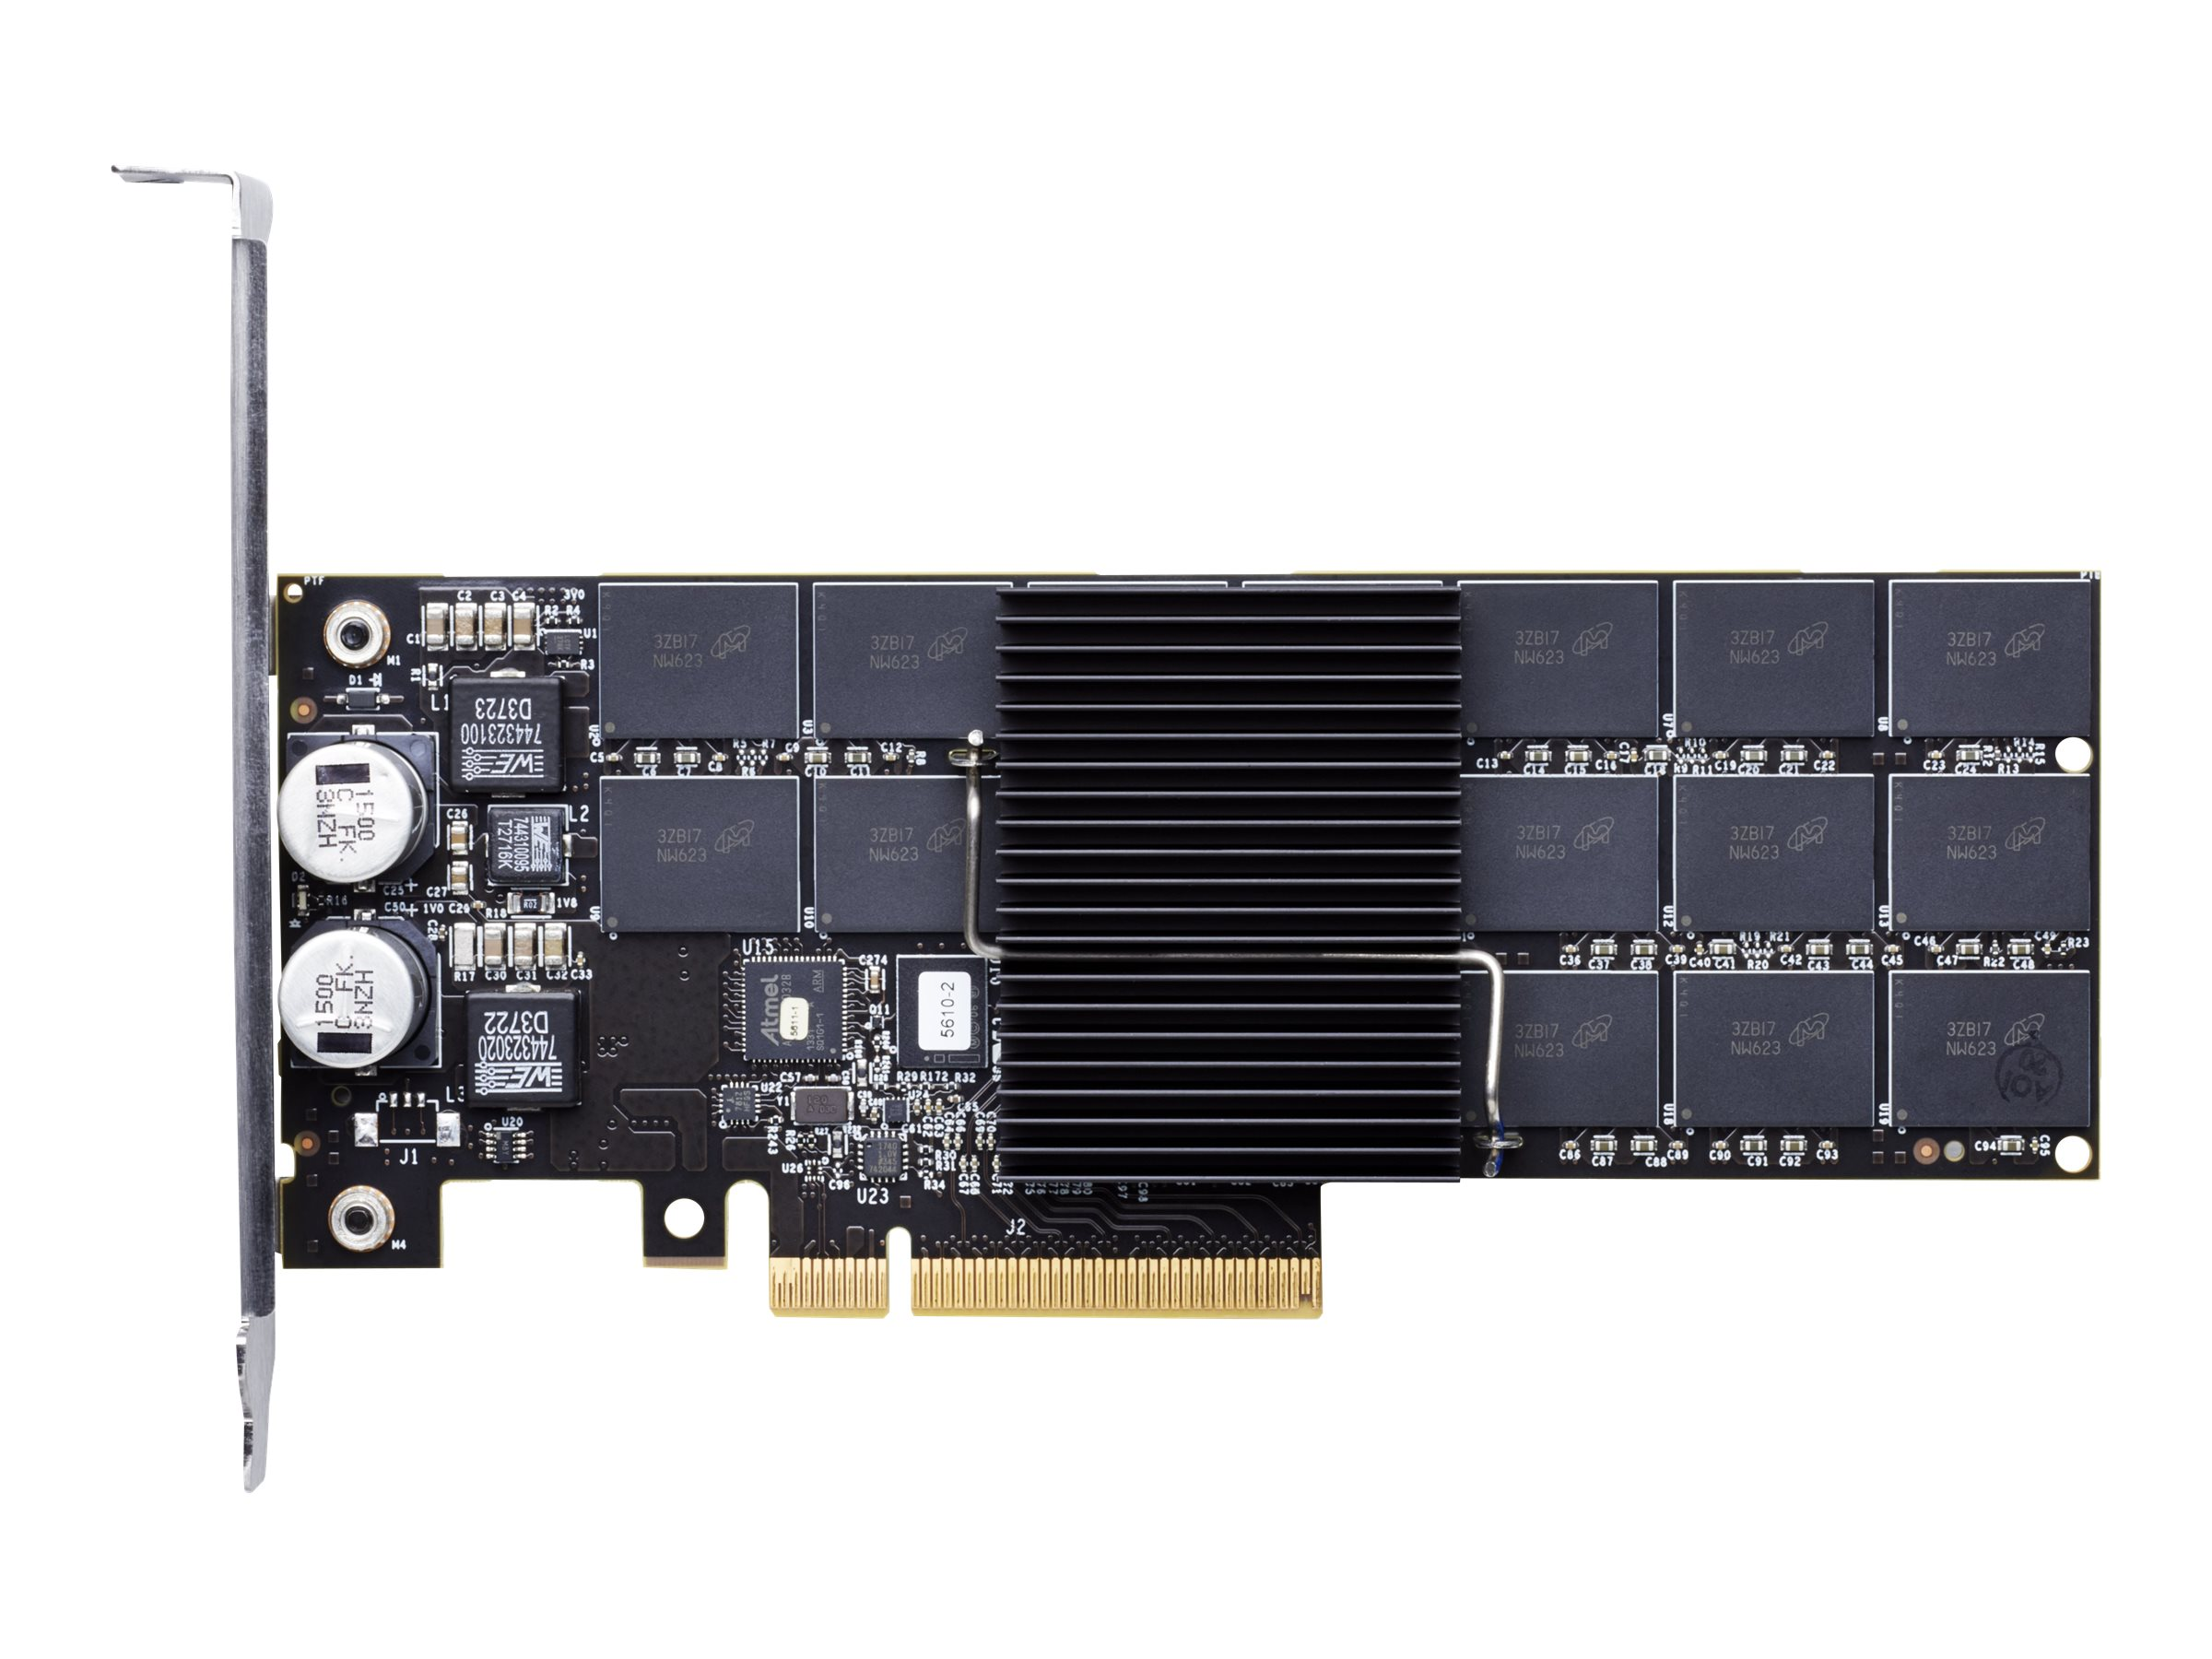 HPE Light Endurance Workload Accelerator - solid state drive - 1.3 TB - PCI Express 2.0 x8